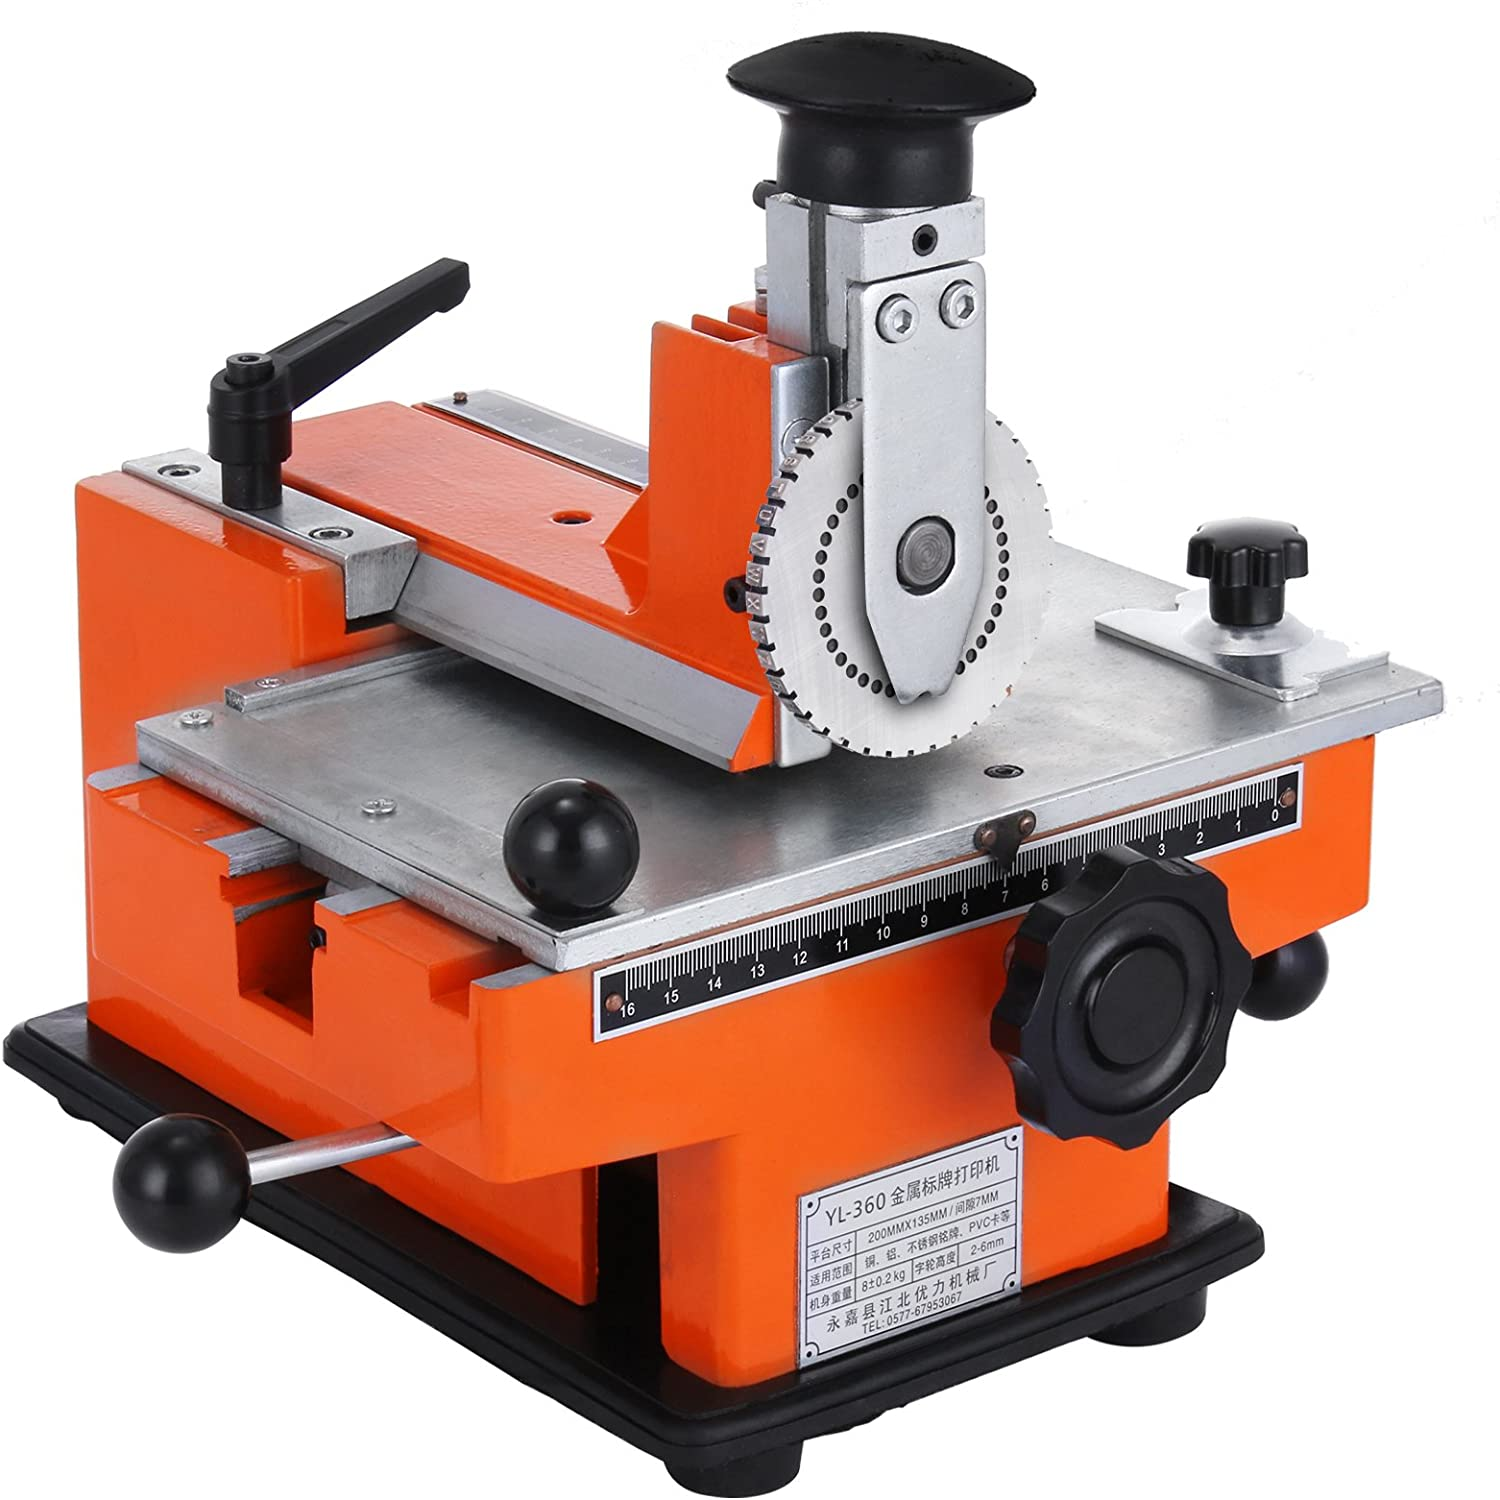 Happybuy Semi Automatic Sheet Embosser 2 to Characters Ultra-Cheap Deals Free shipping on posting reviews 4 Sec per